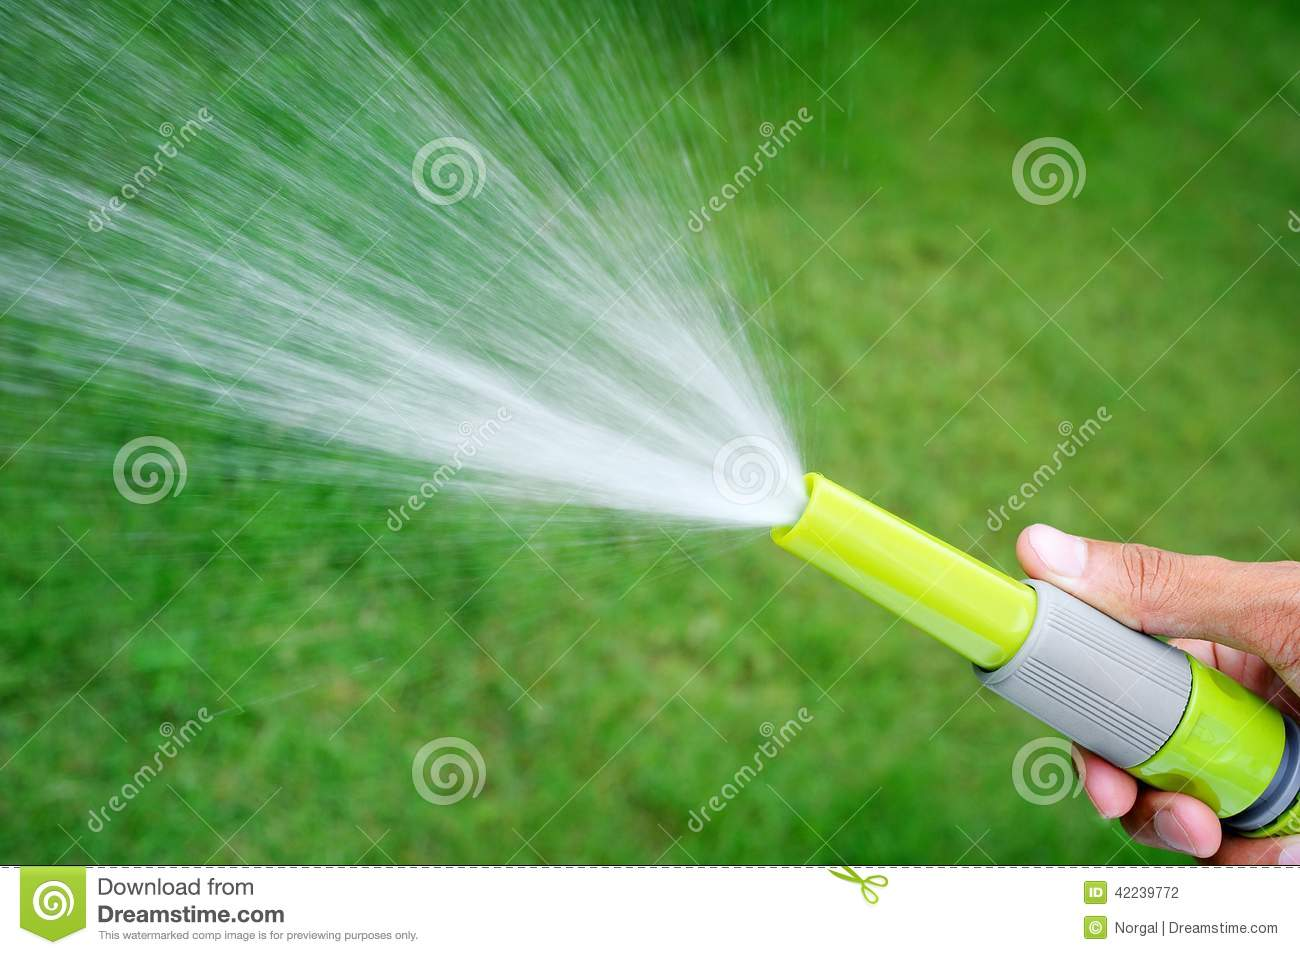 Watering Lawn Stock Photo   Image  42239772